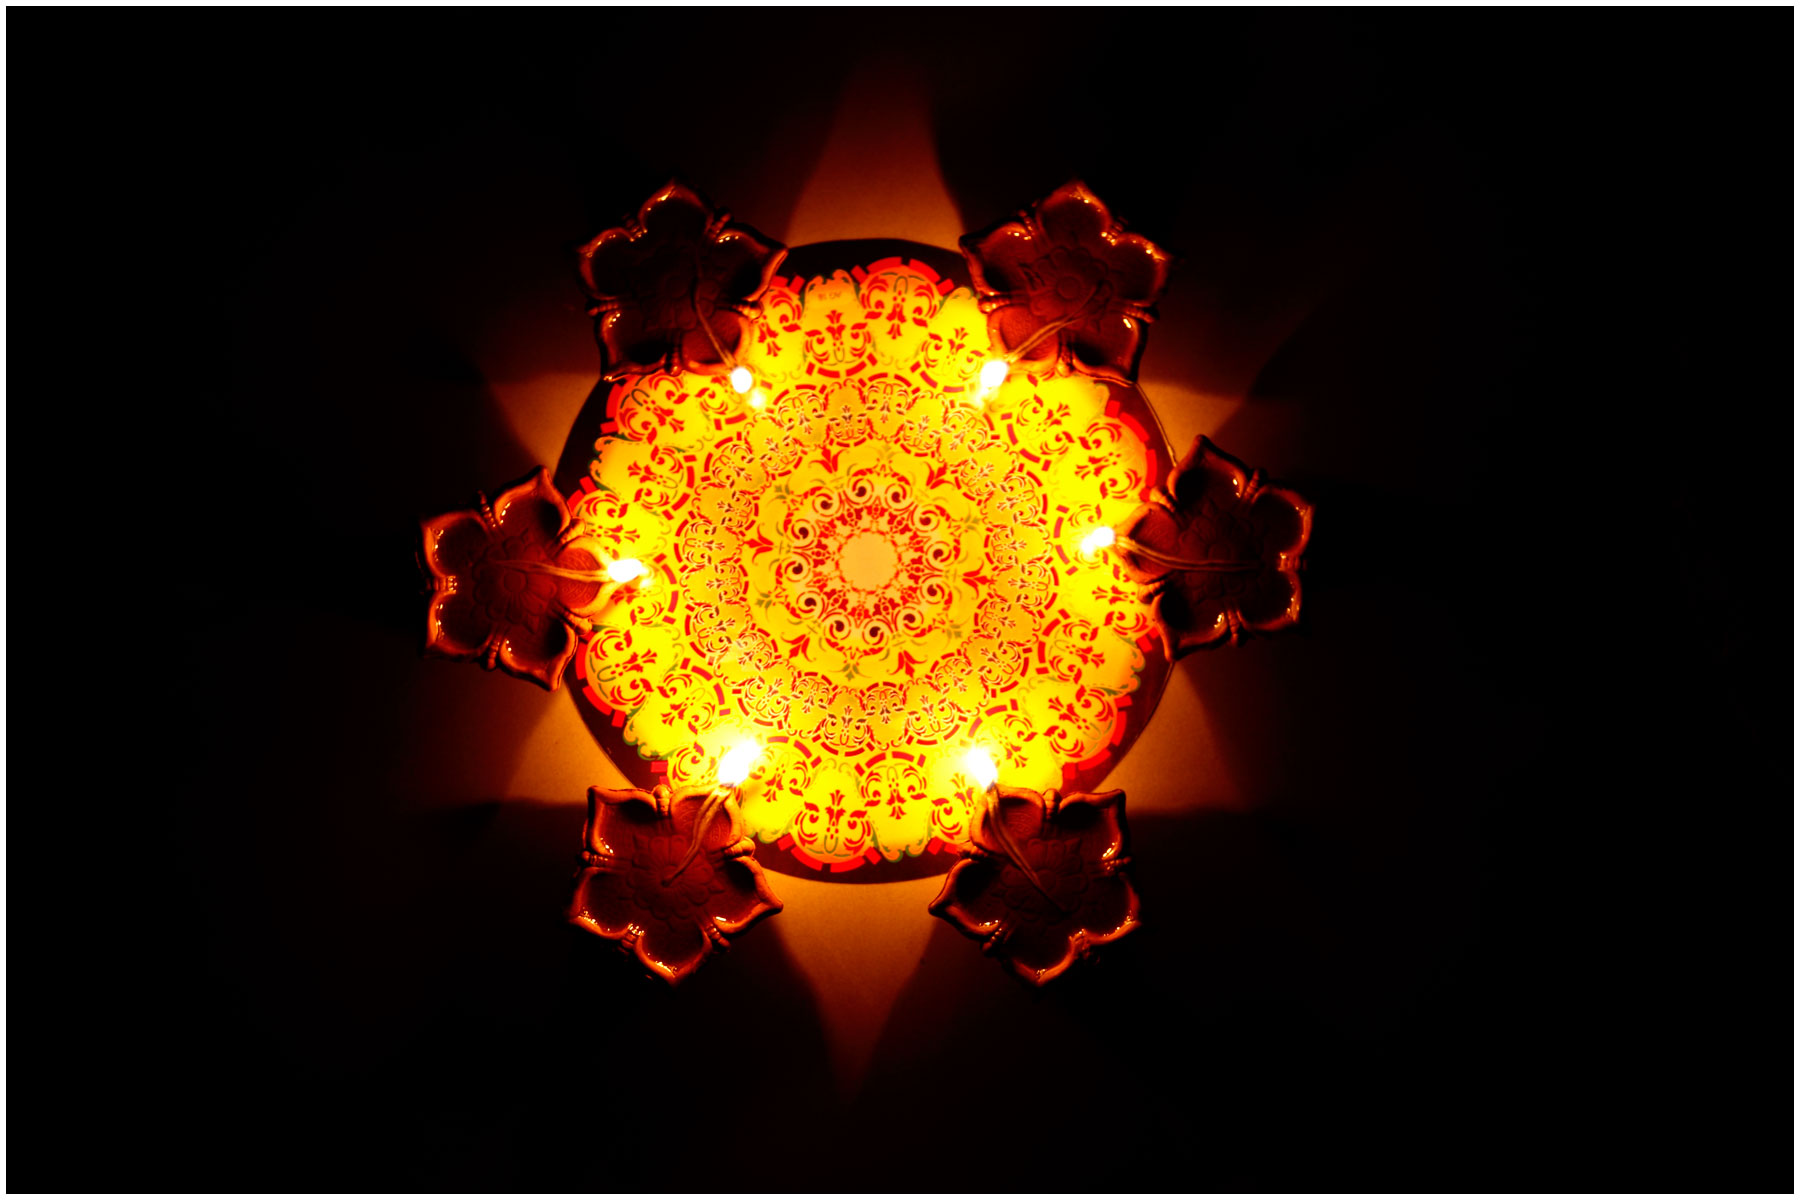 45 Beautiful HD Diwali Images and Wallpaper to feel the Enlightenment 1800x1200